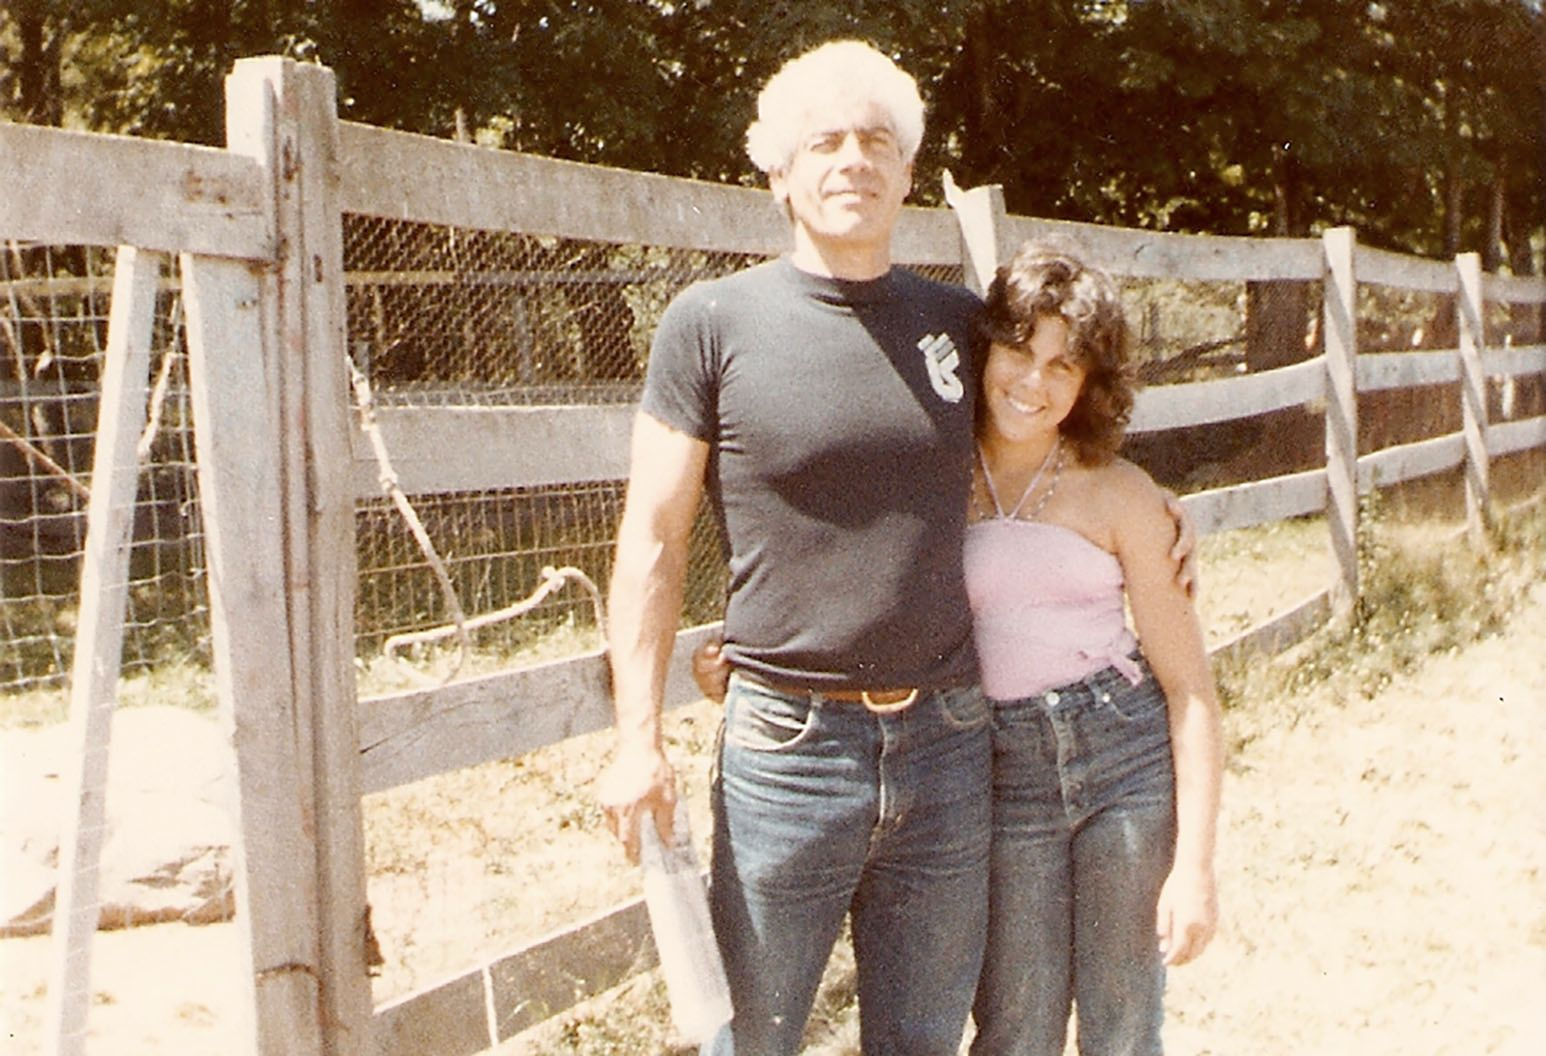 Very fit older man with white hair stands tall in a tight fitting black t-shirt and jeans. Also posing with him is a younger woman in jeans and a pink blouse. They are both smiling as they stand in front of a wooden fence out doors.